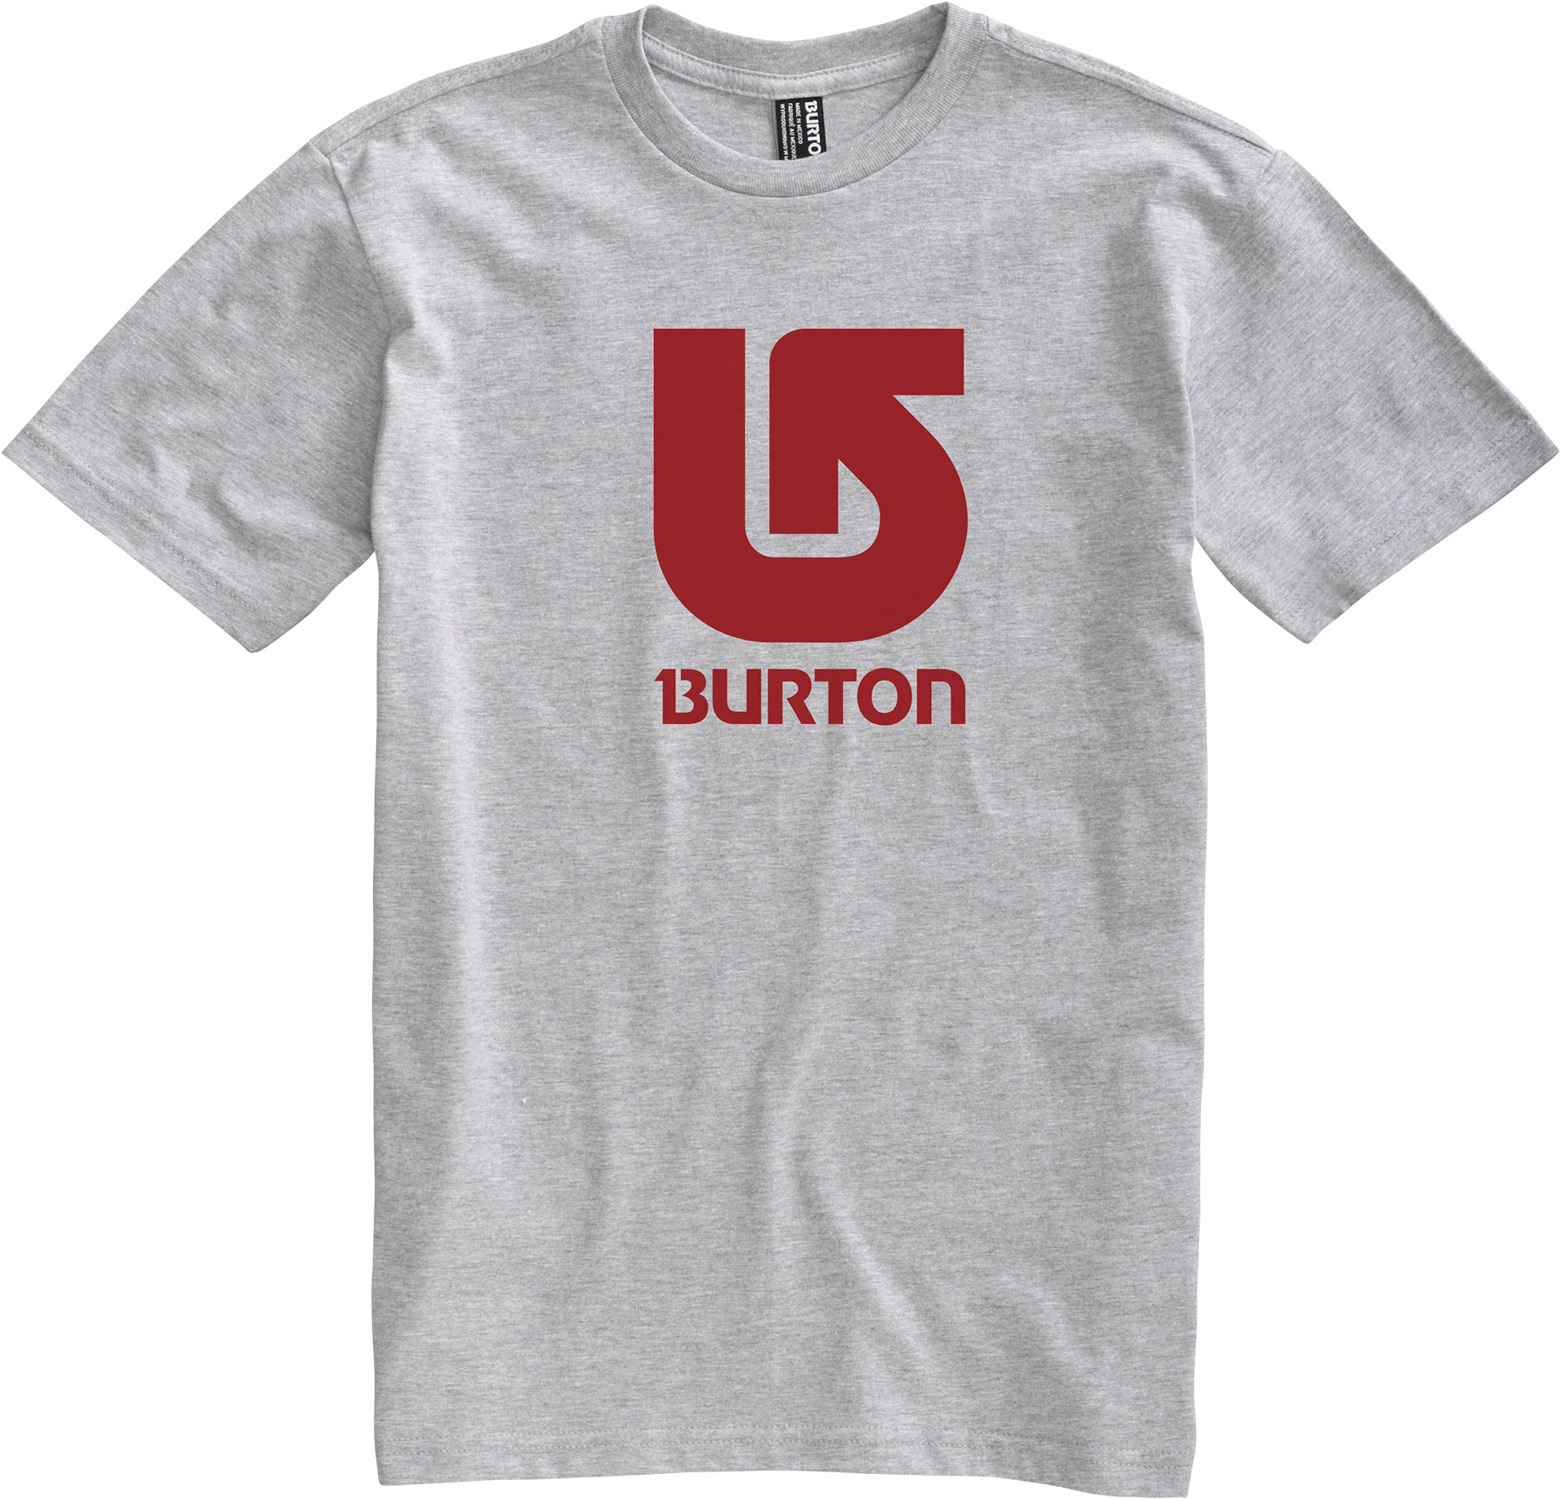 Snowboard Key Features of The Burton Logo Vertical T-Shirt: Regular Fit Crew Neck Short Sleeve 100% Cotton Screen Print on Front and Back Regular Fit XS-XL - $12.95